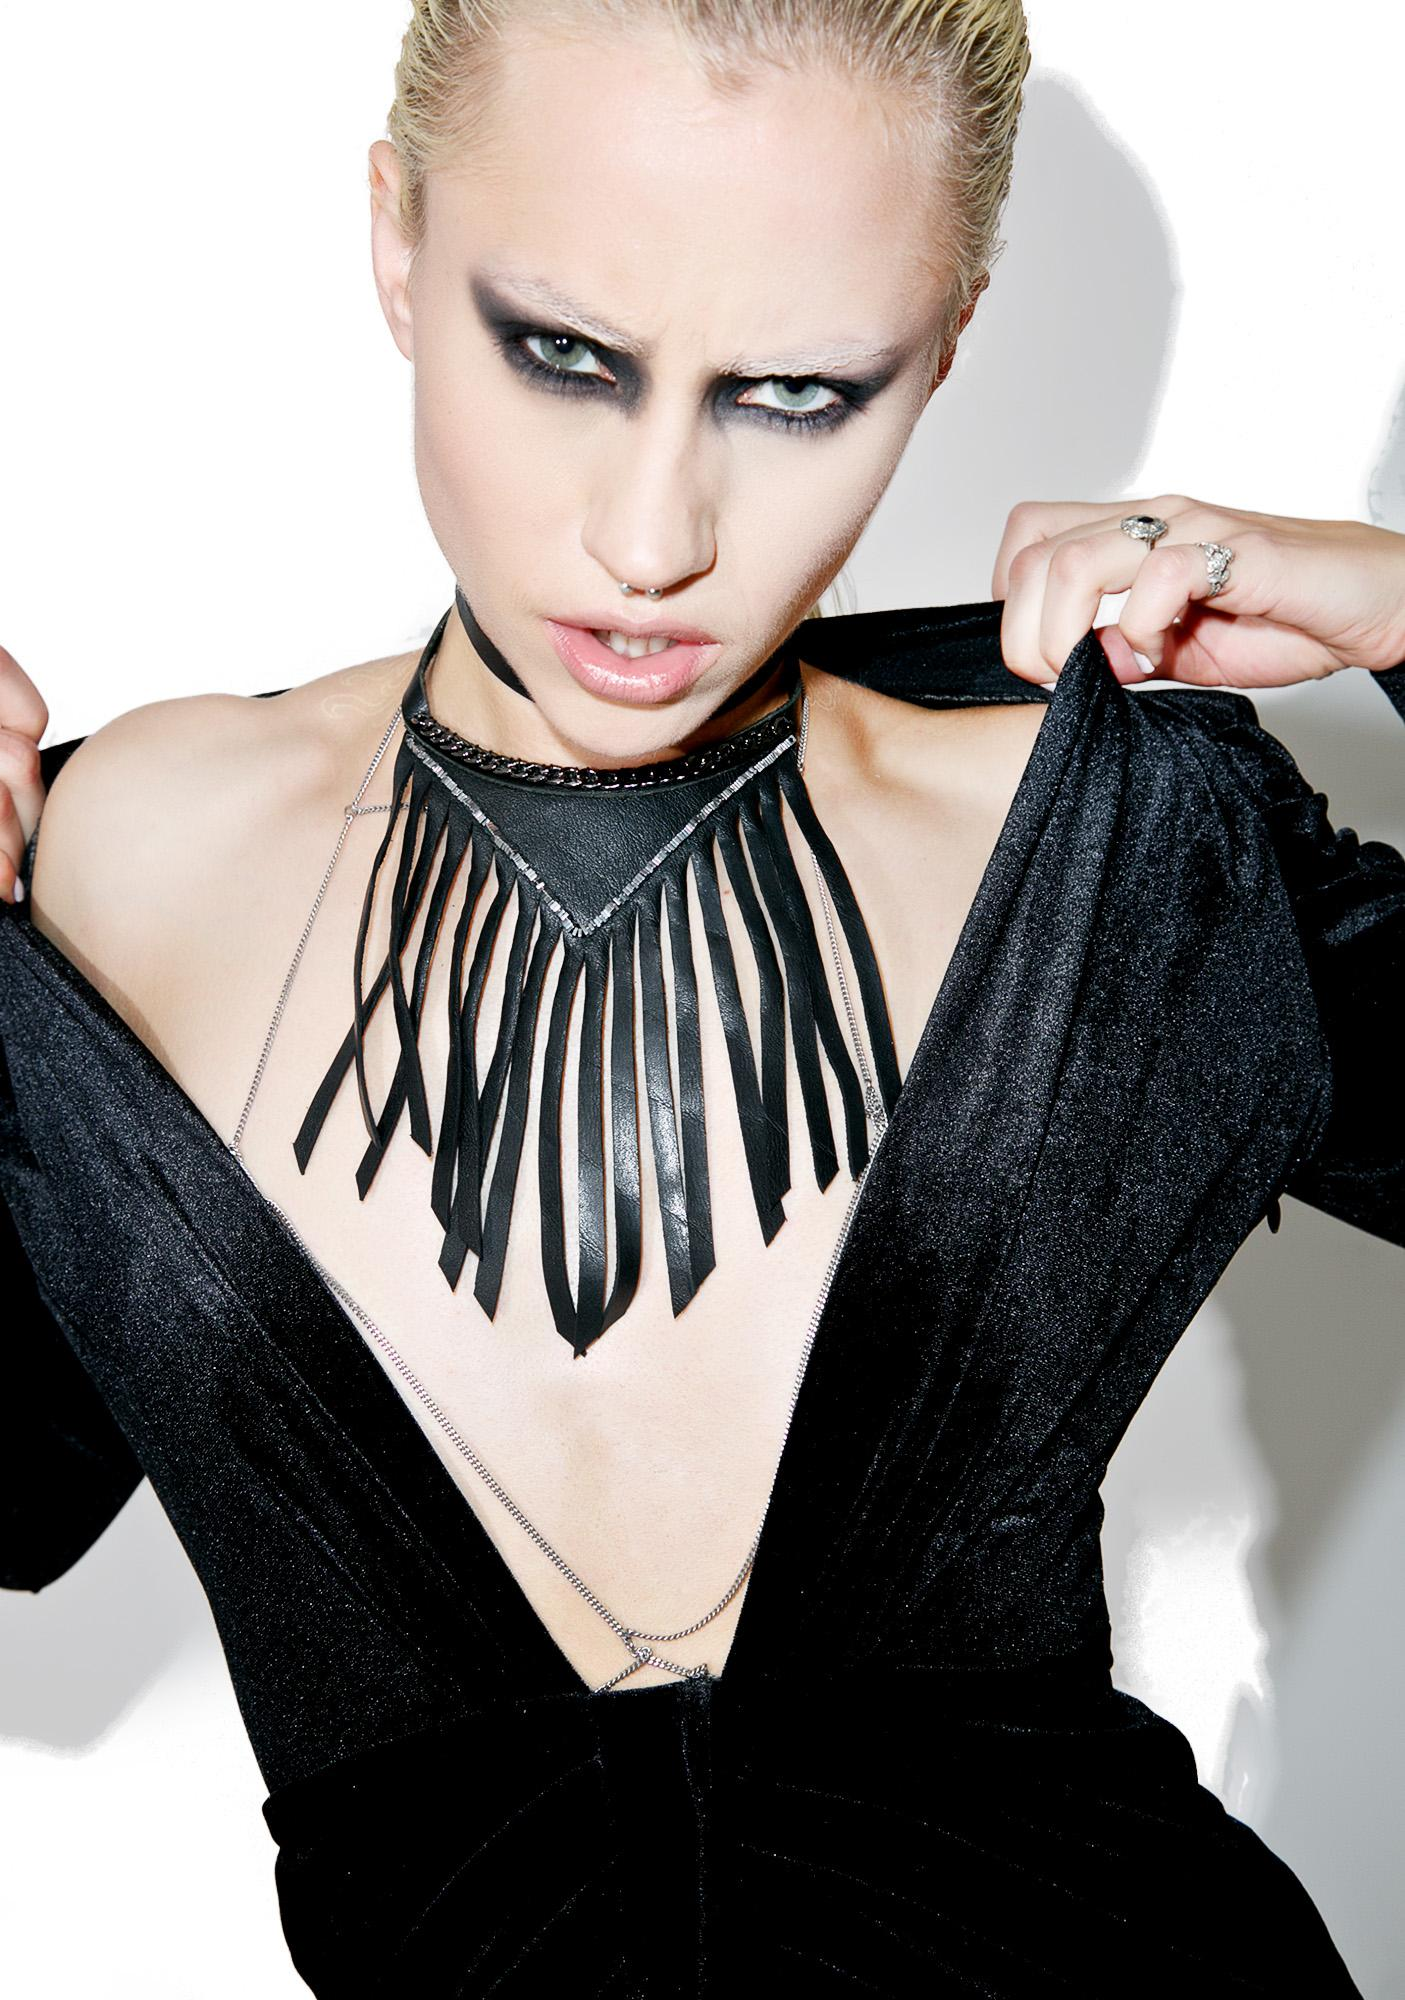 WREN AND GLORY Fringed Leather Choker